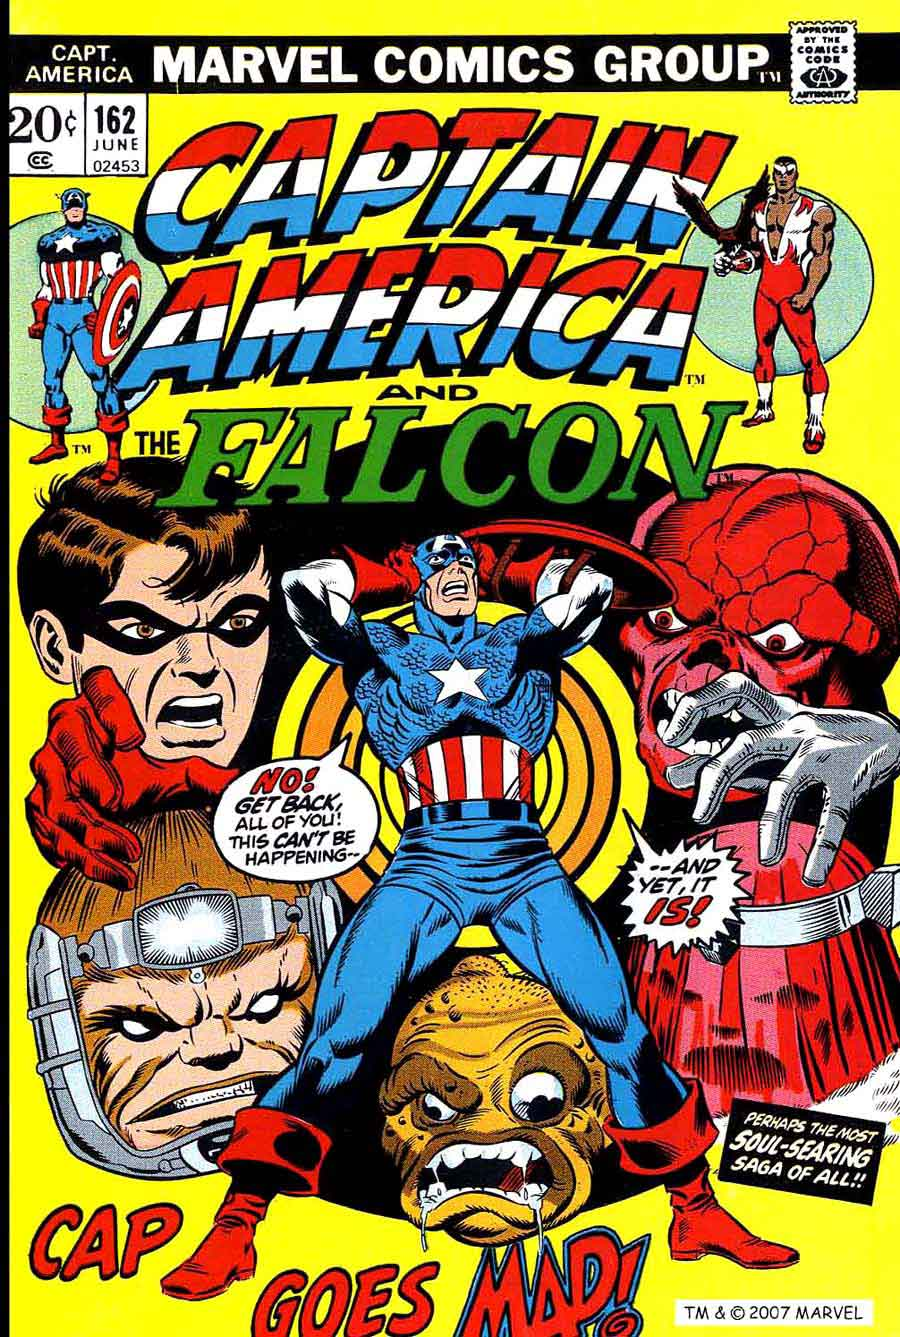 Captain America v1 #162 marvel comic book cover art by Jim Starlin